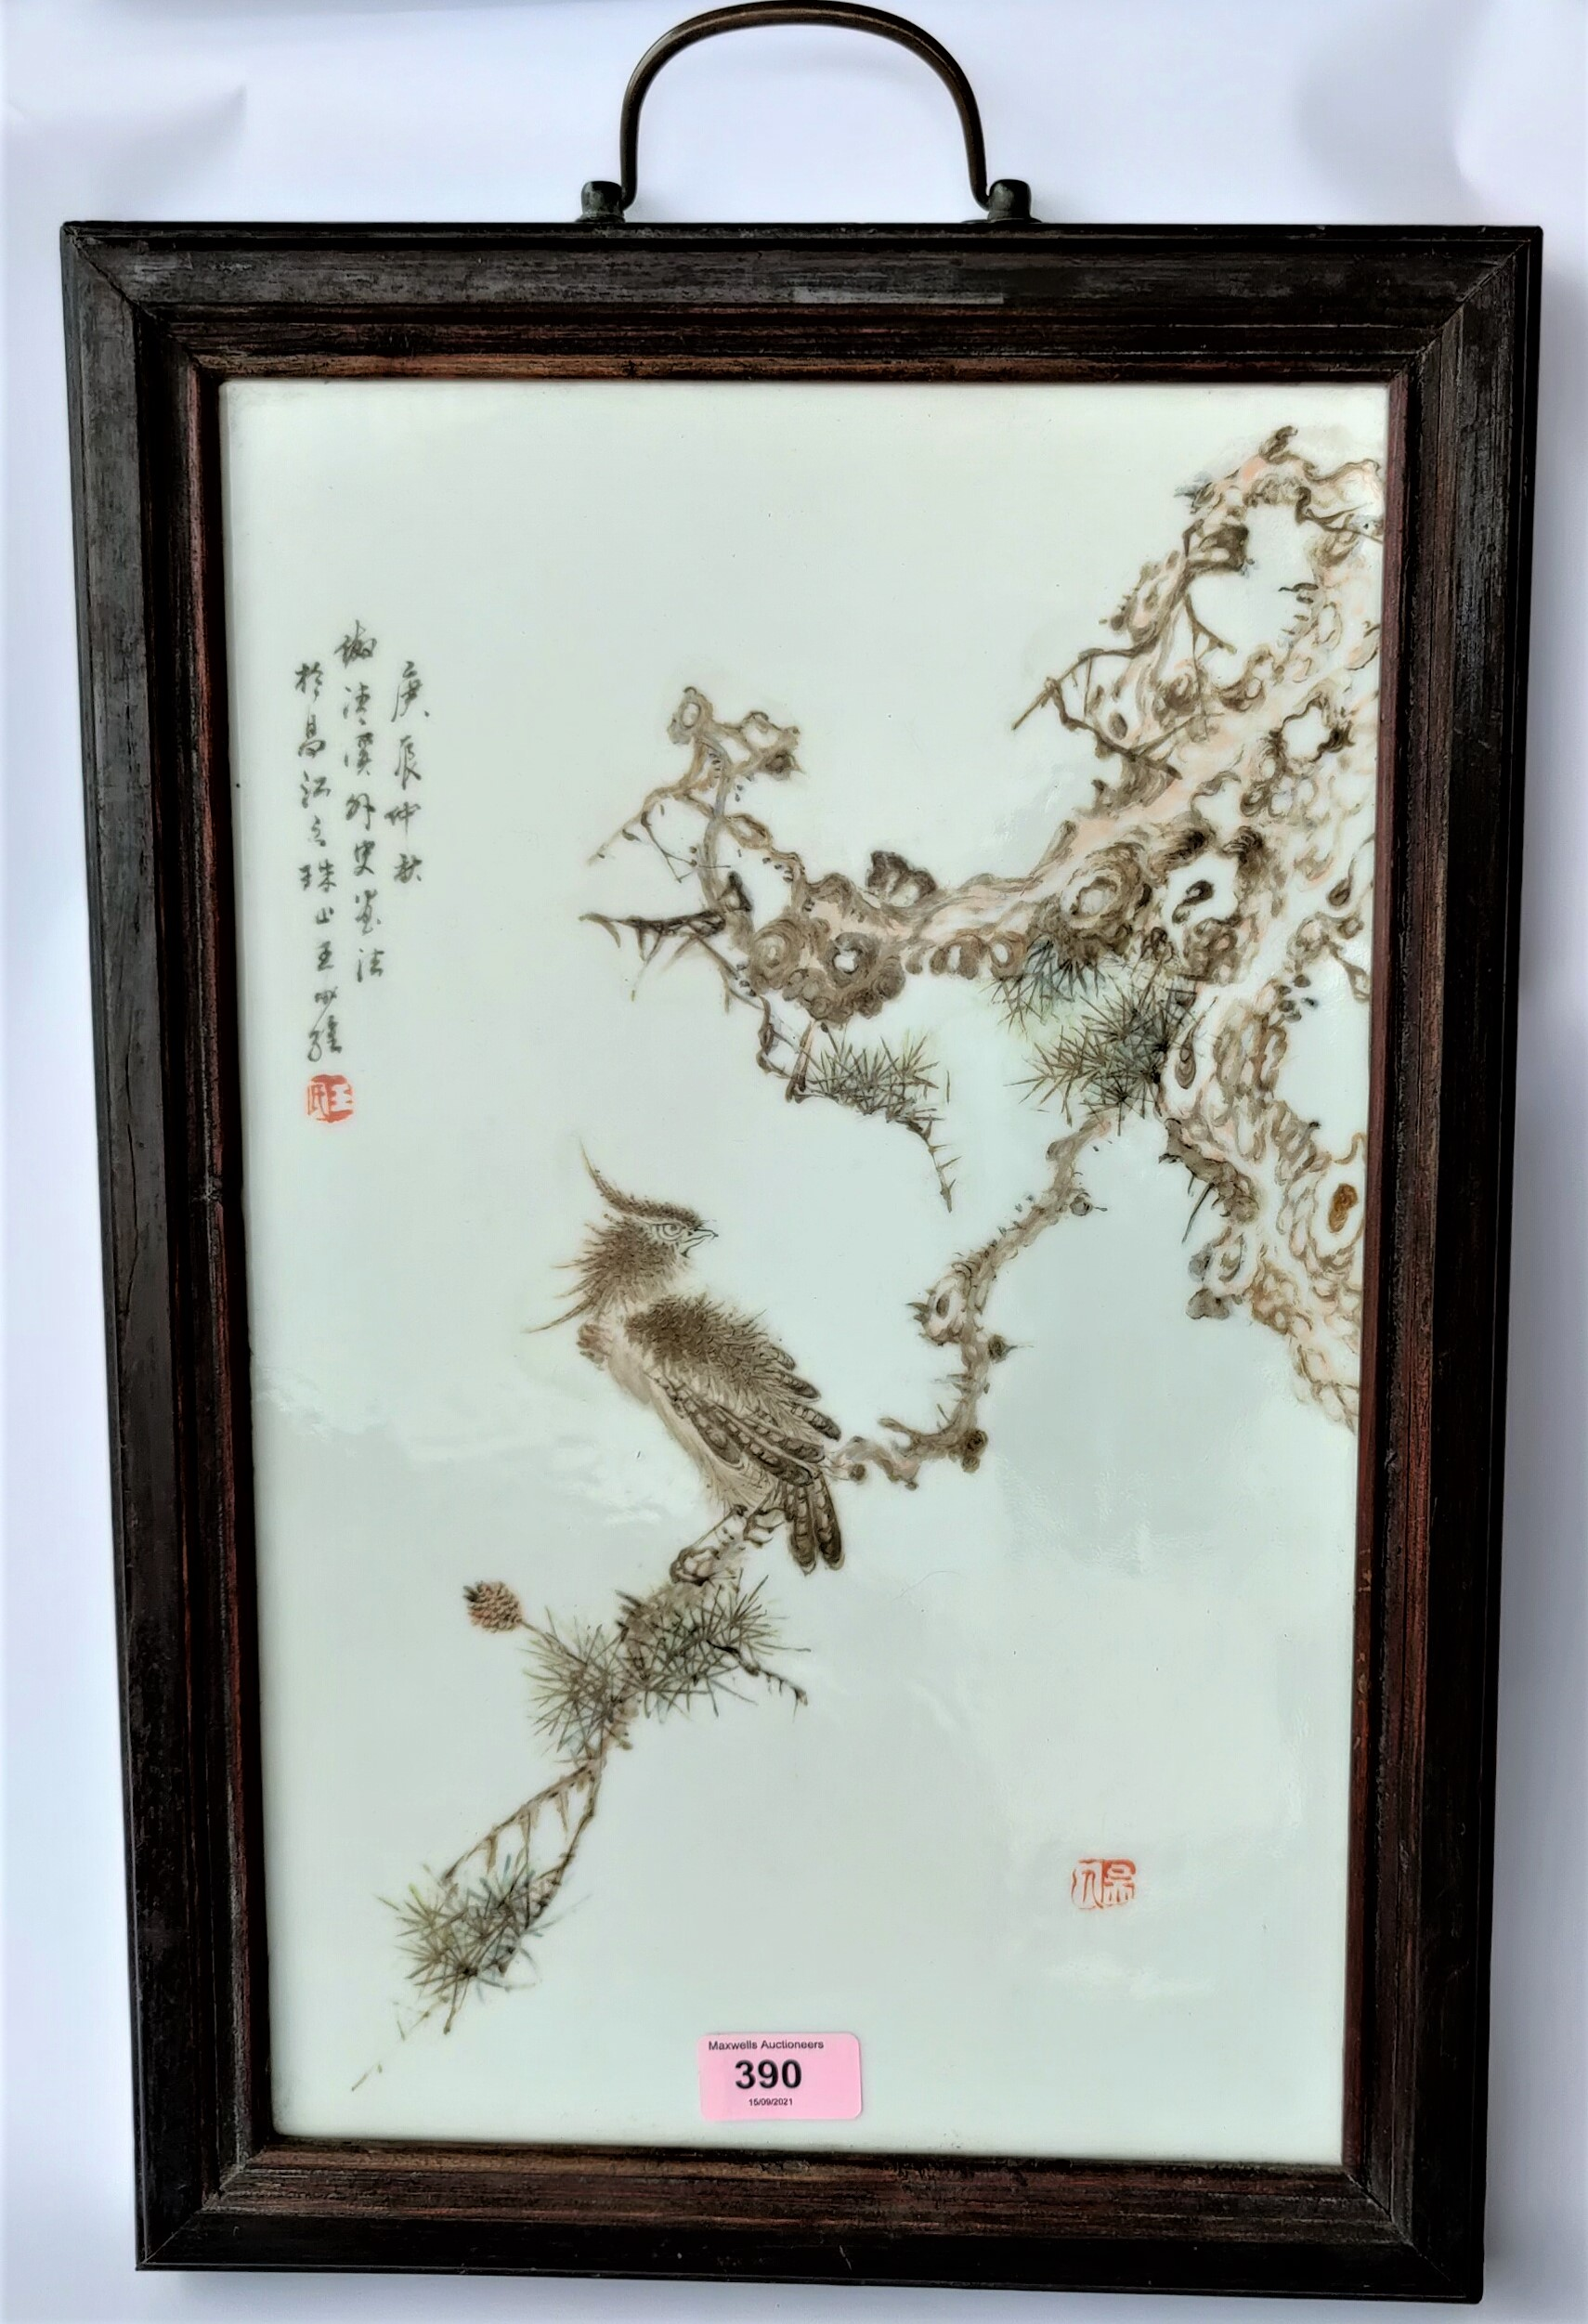 A Chinese Republic Period handpained ceramic tile of a bird on a branch, wooden frame, with